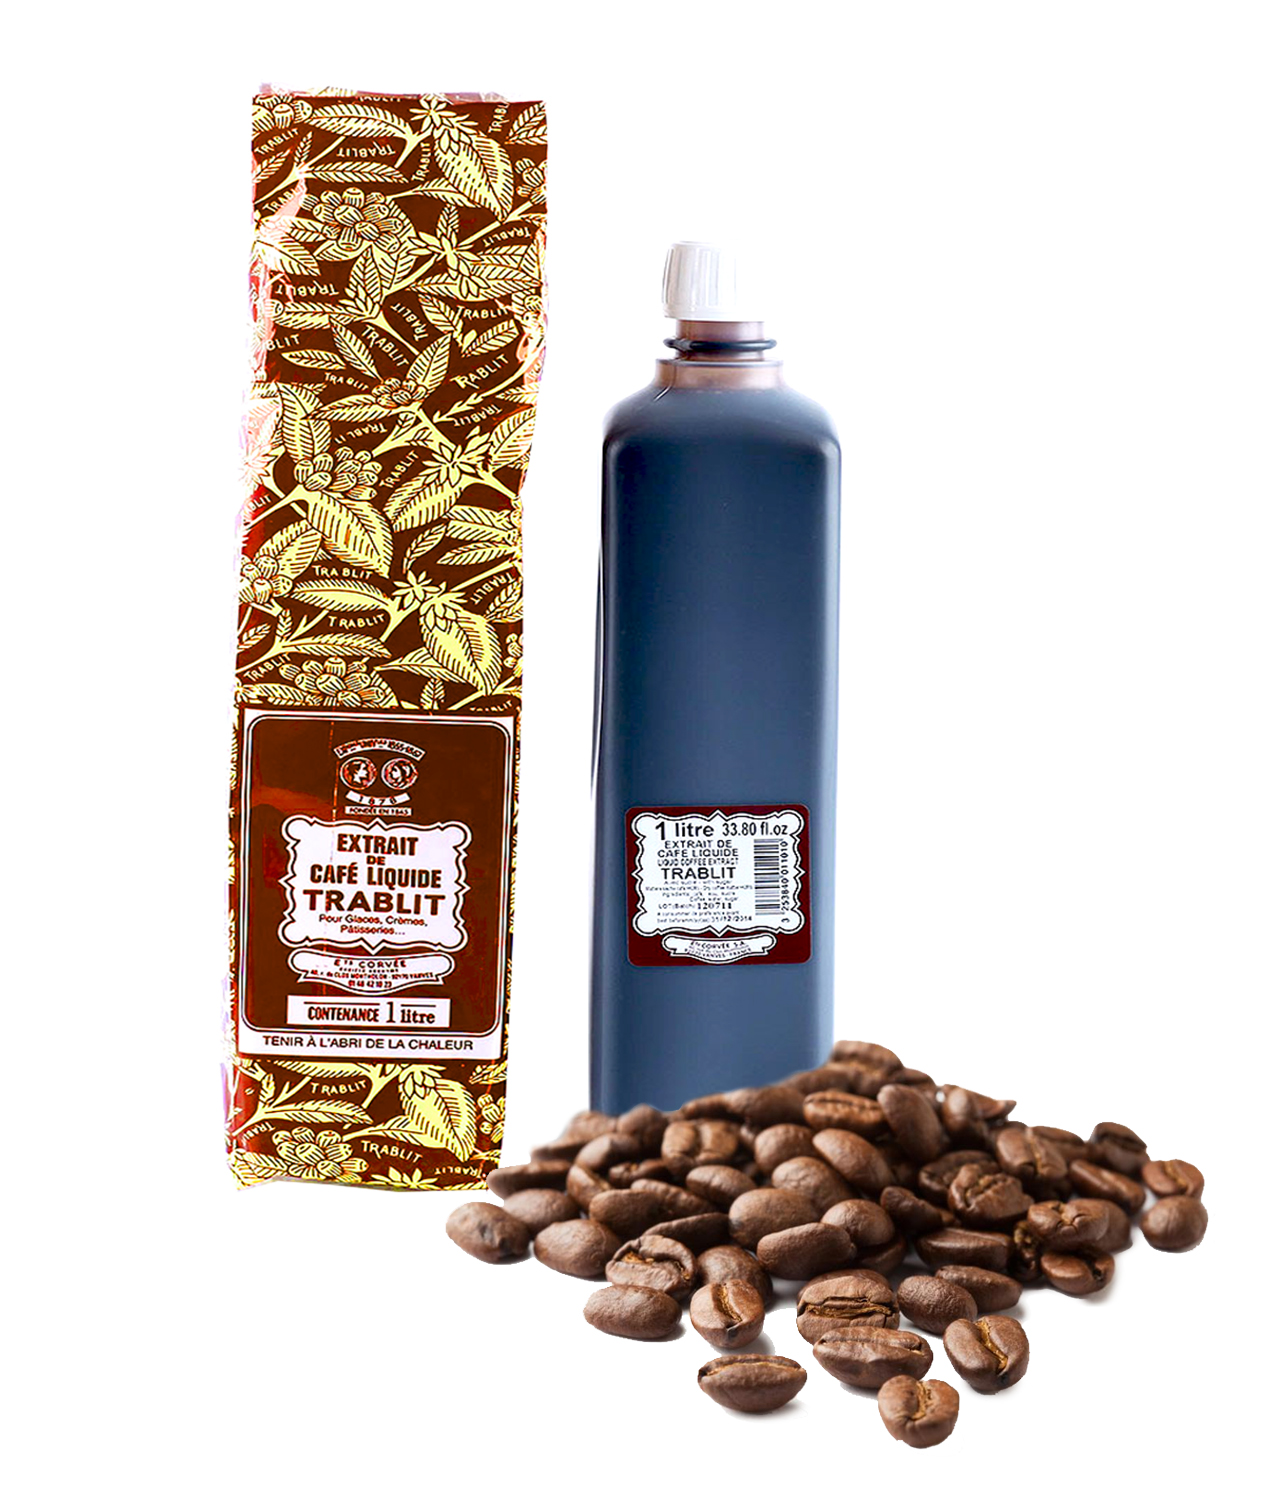 Liquid Coffee Extract Trablit (กลิ่นกาแฟ) (1L)